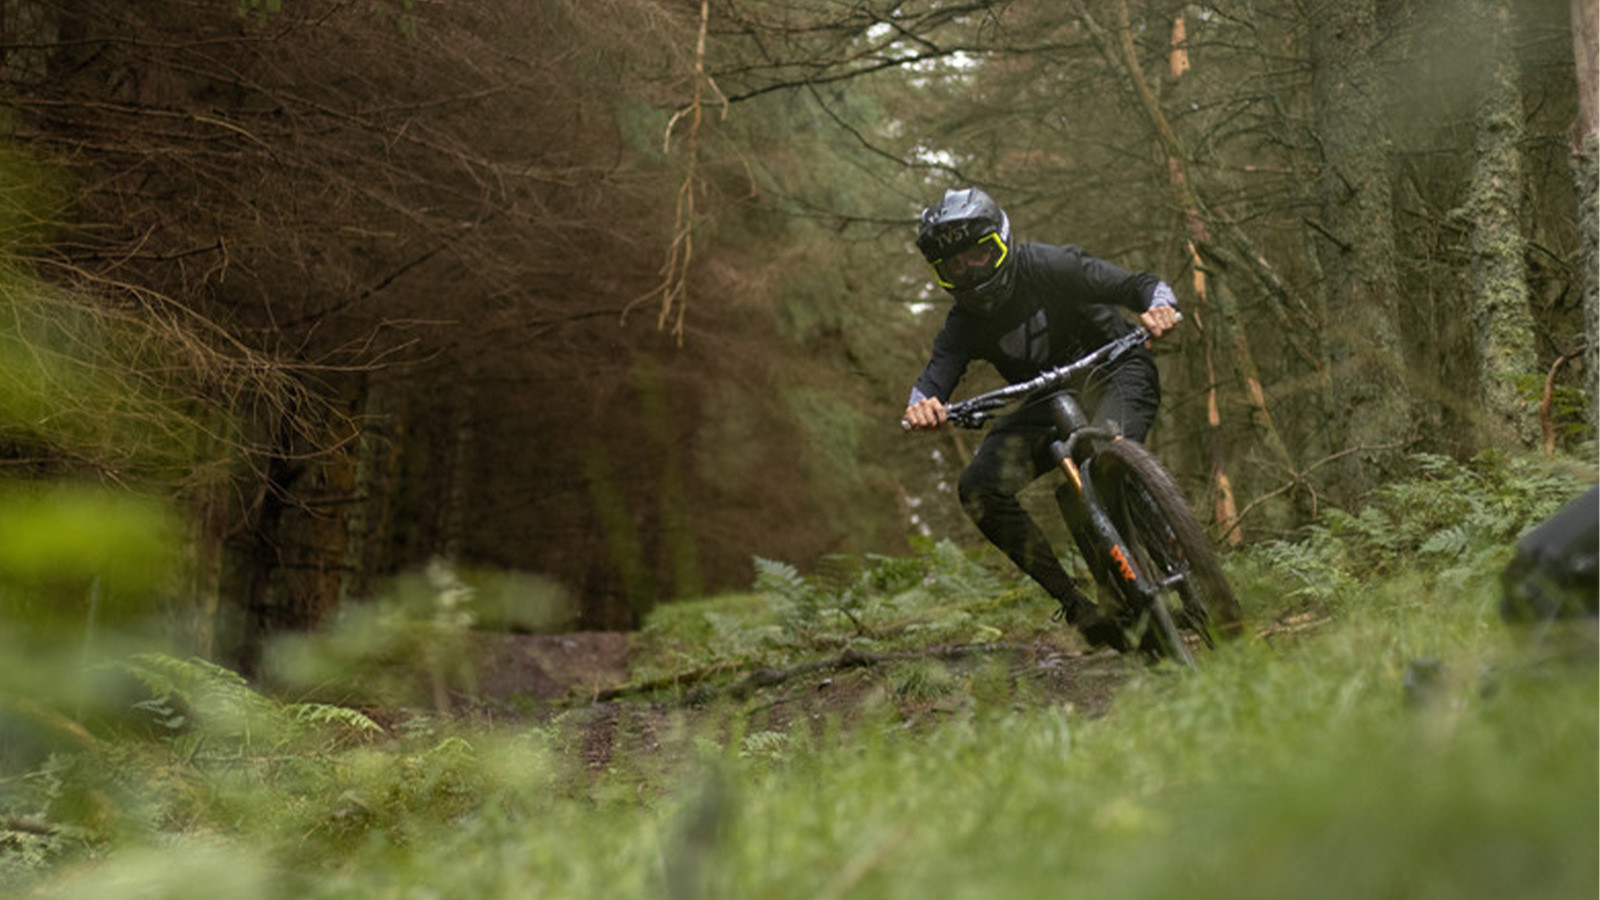 Keeping it Tight When It's Steep and Loose - Innes Graham Shows How It's Done